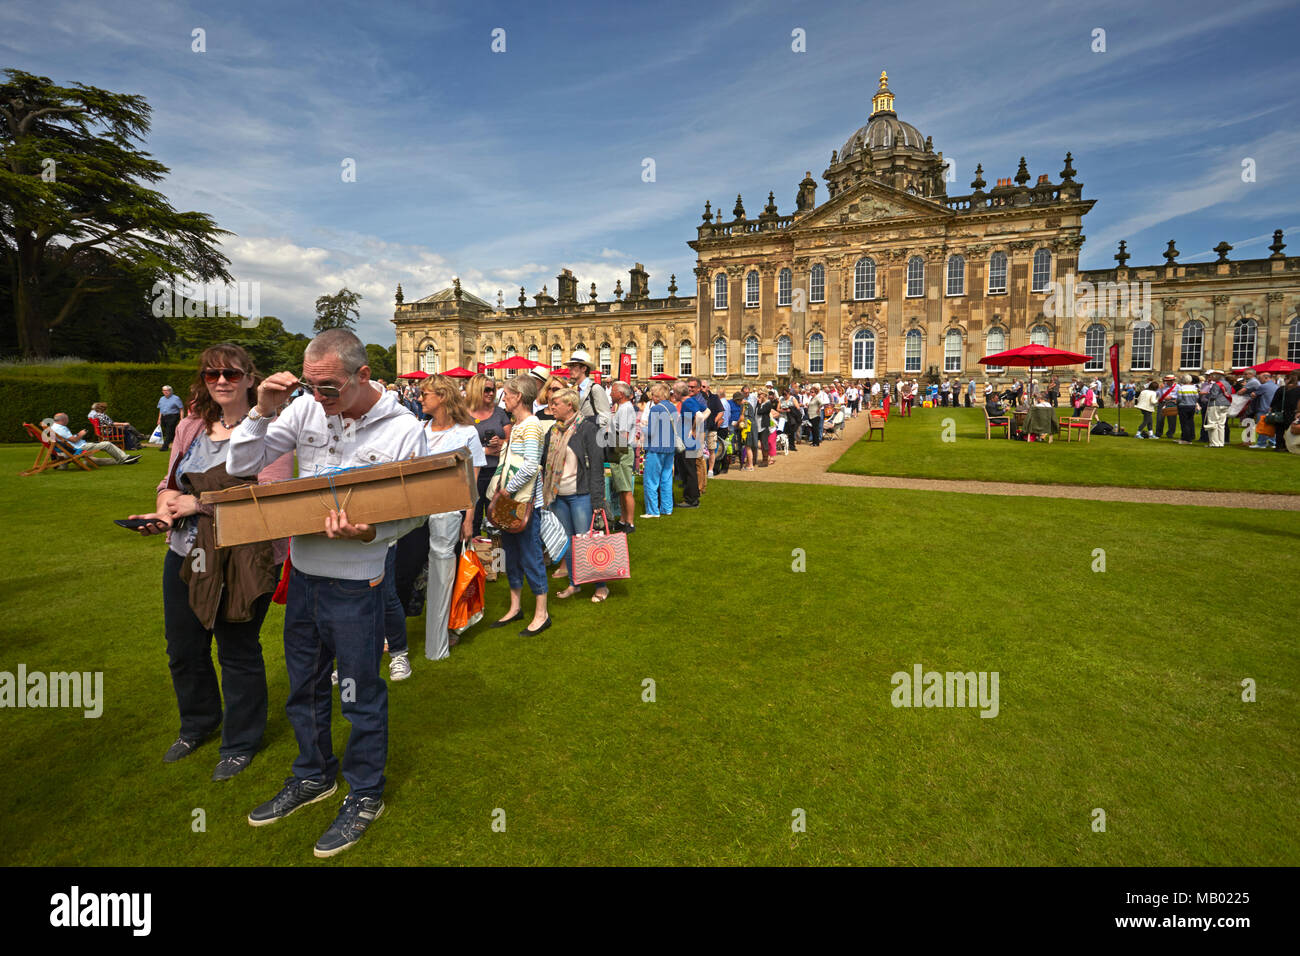 Members of the general public queuing at the filming of the BBC television programme Antiques Roadshow in the grounds of Castle Howard. - Stock Image